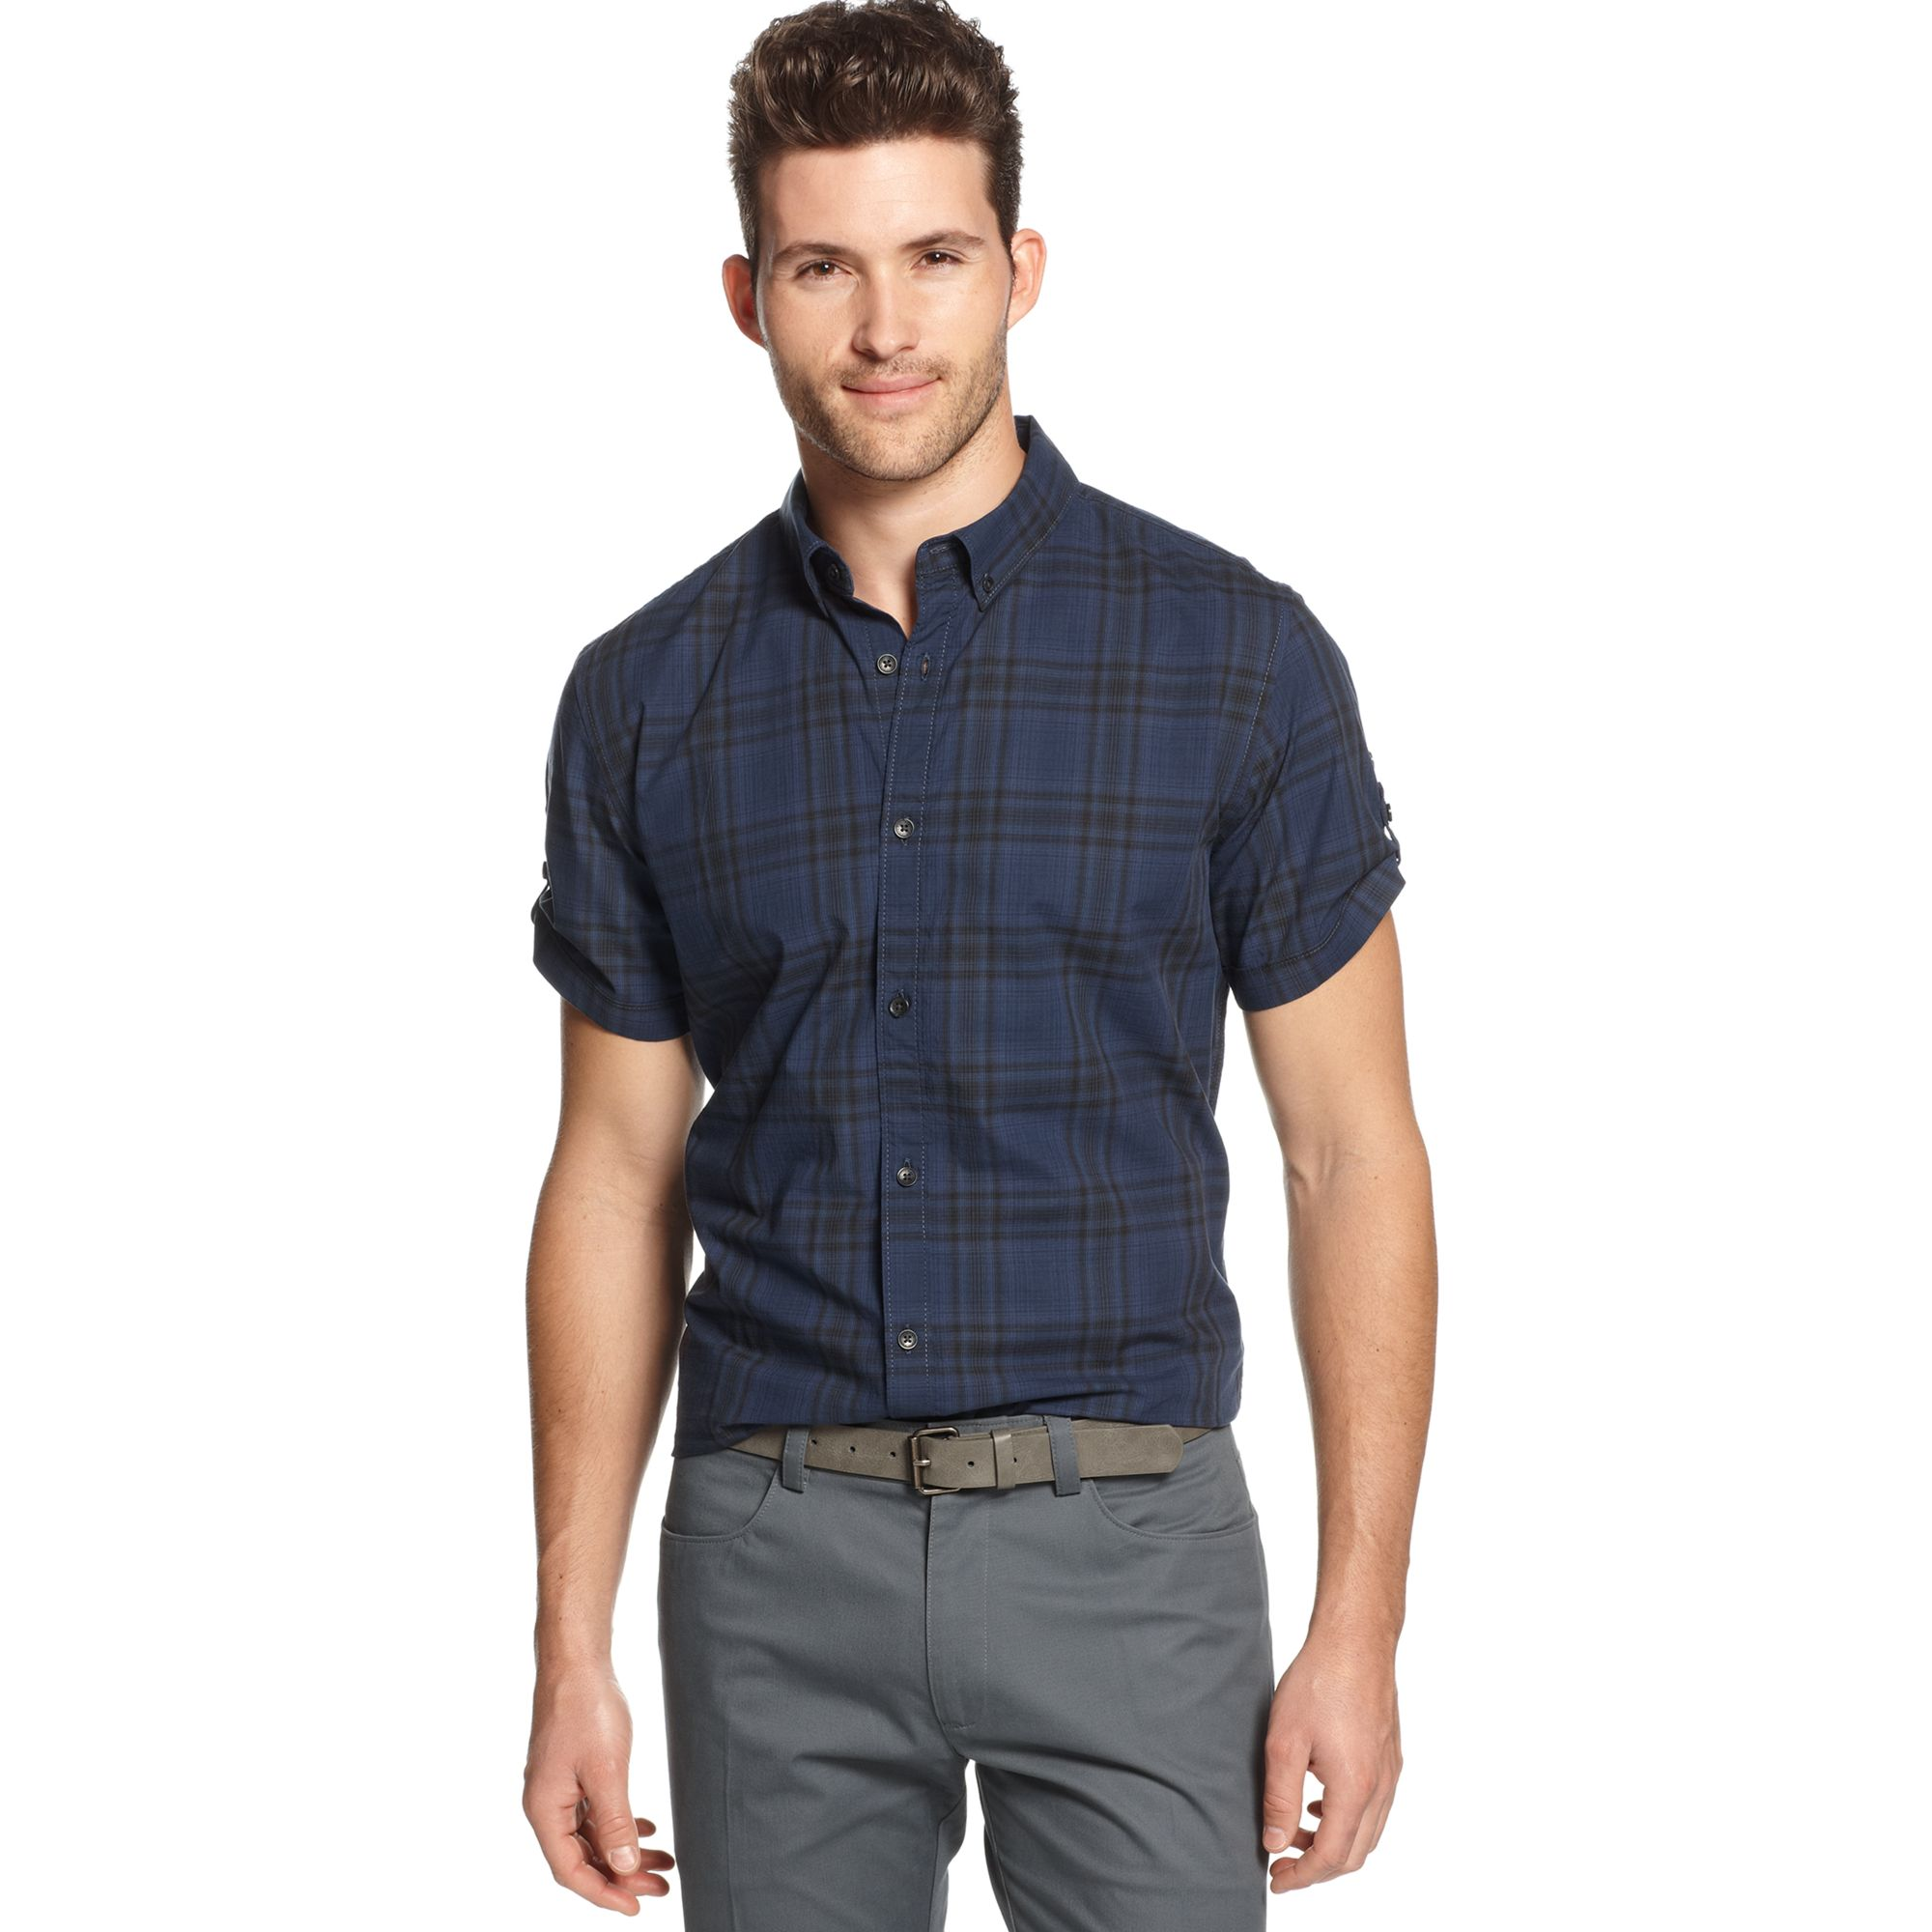 Lyst - Calvin klein jeans Short Sleeve Plaid Button D.own Shirt in ...